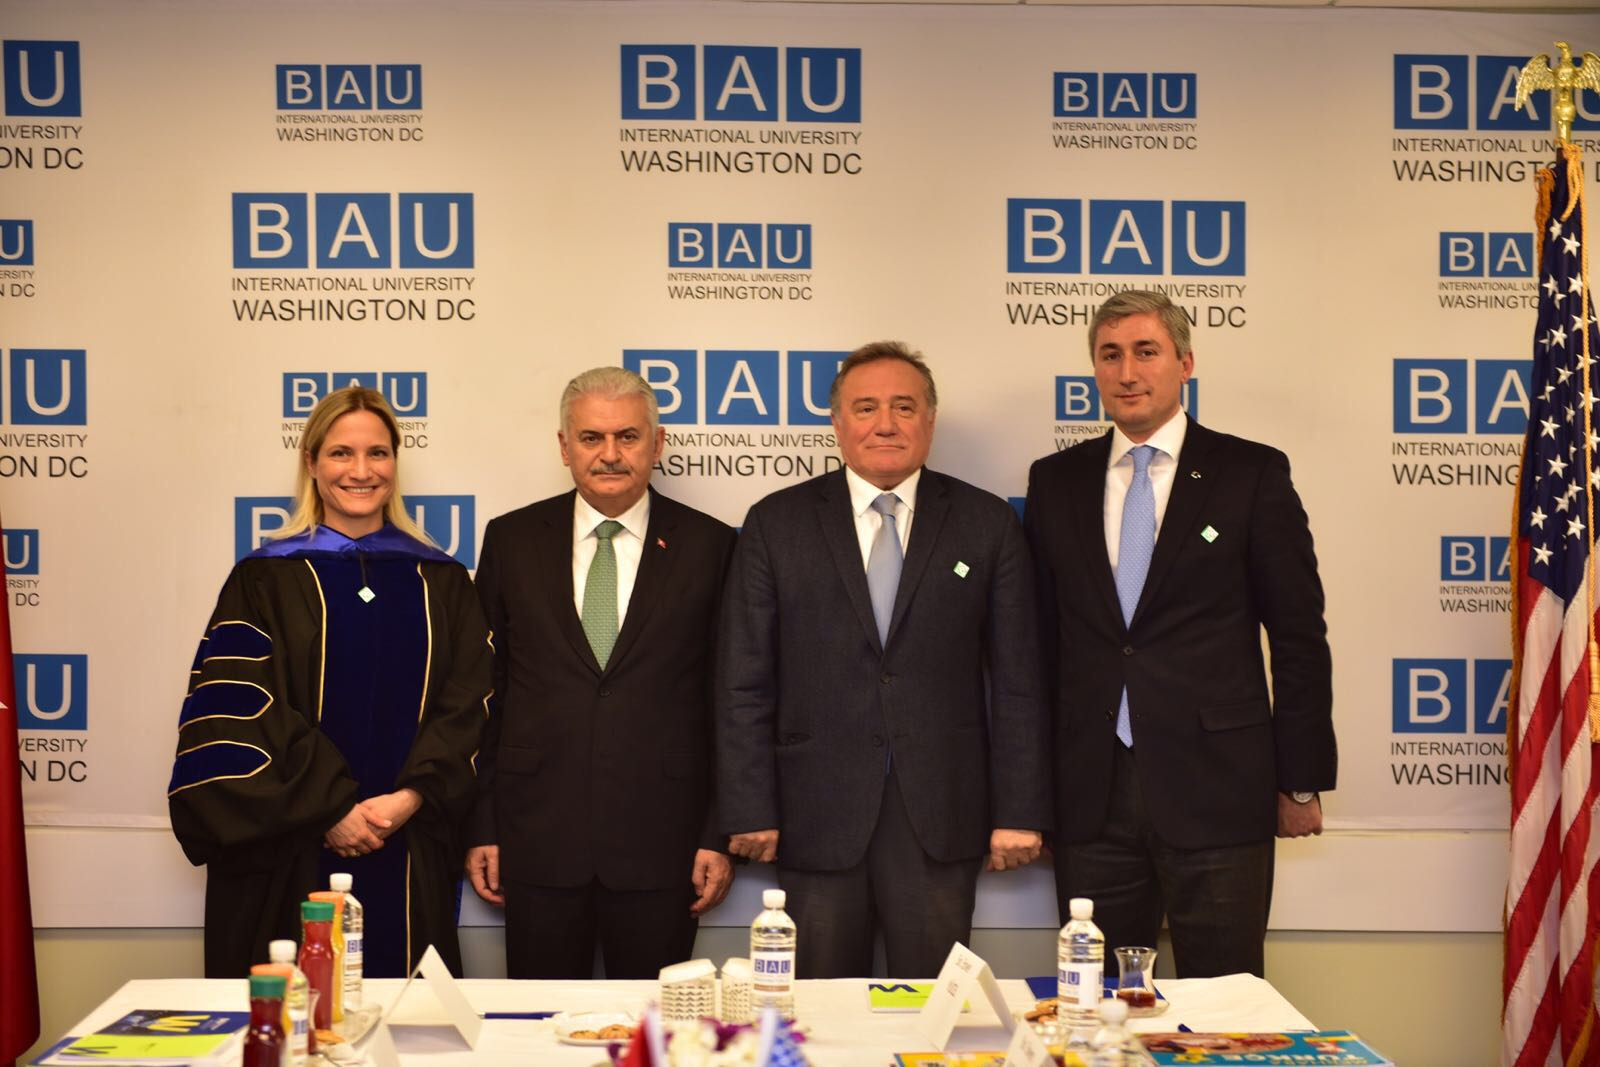 TURKISH PRIME MINISTER VISITS BAU INTERNATIONAL, BRIEFED ON ACADEMIC MISSION